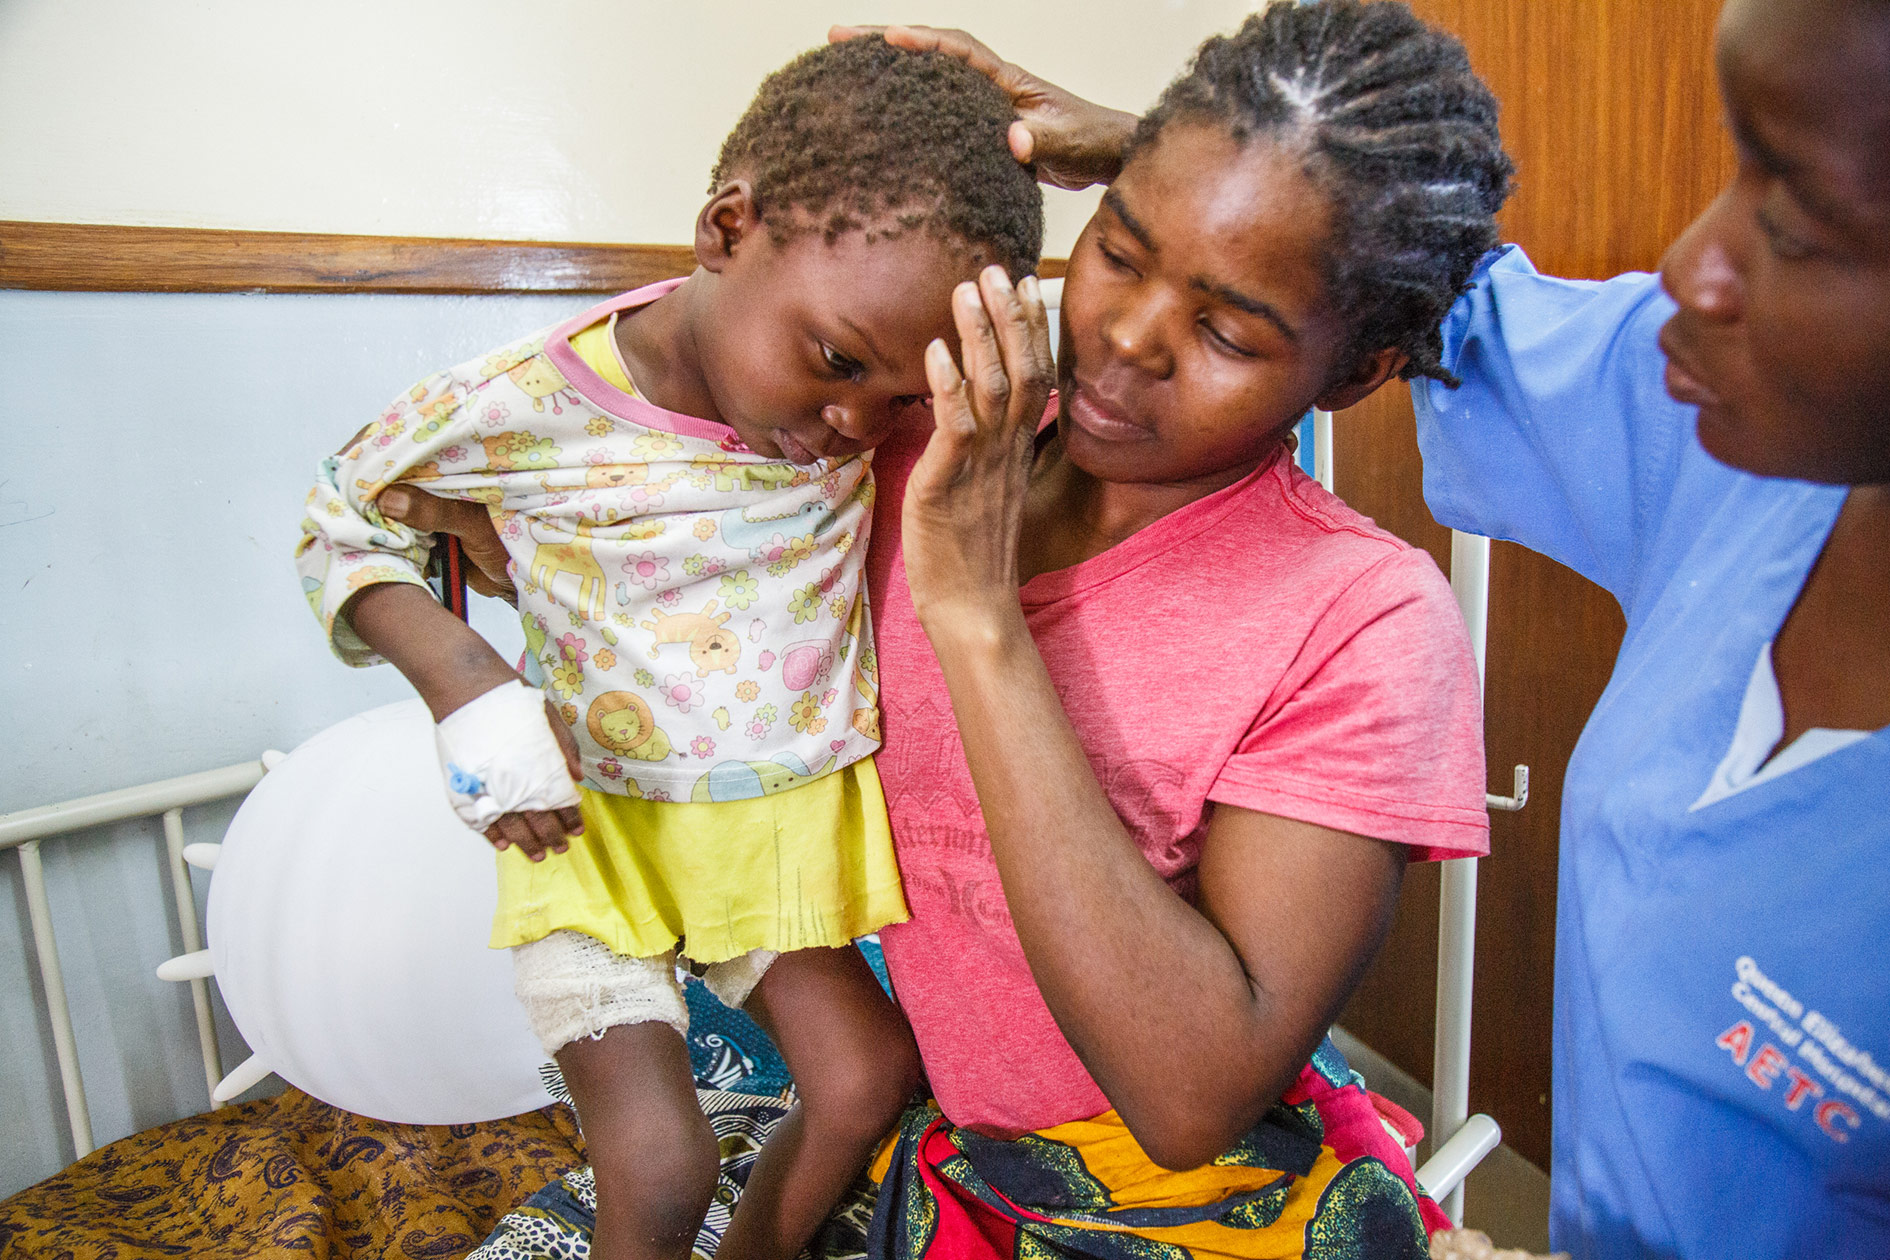 'When I was cooking he fell in the fire', says Aida, the mother of this two-year-old boy. Her son Chisommo's lower back has been burned to the third degree. Nurse Chrissy laughs when she sees the boy: 'when he came in he was so bad, but he is getting better now.'